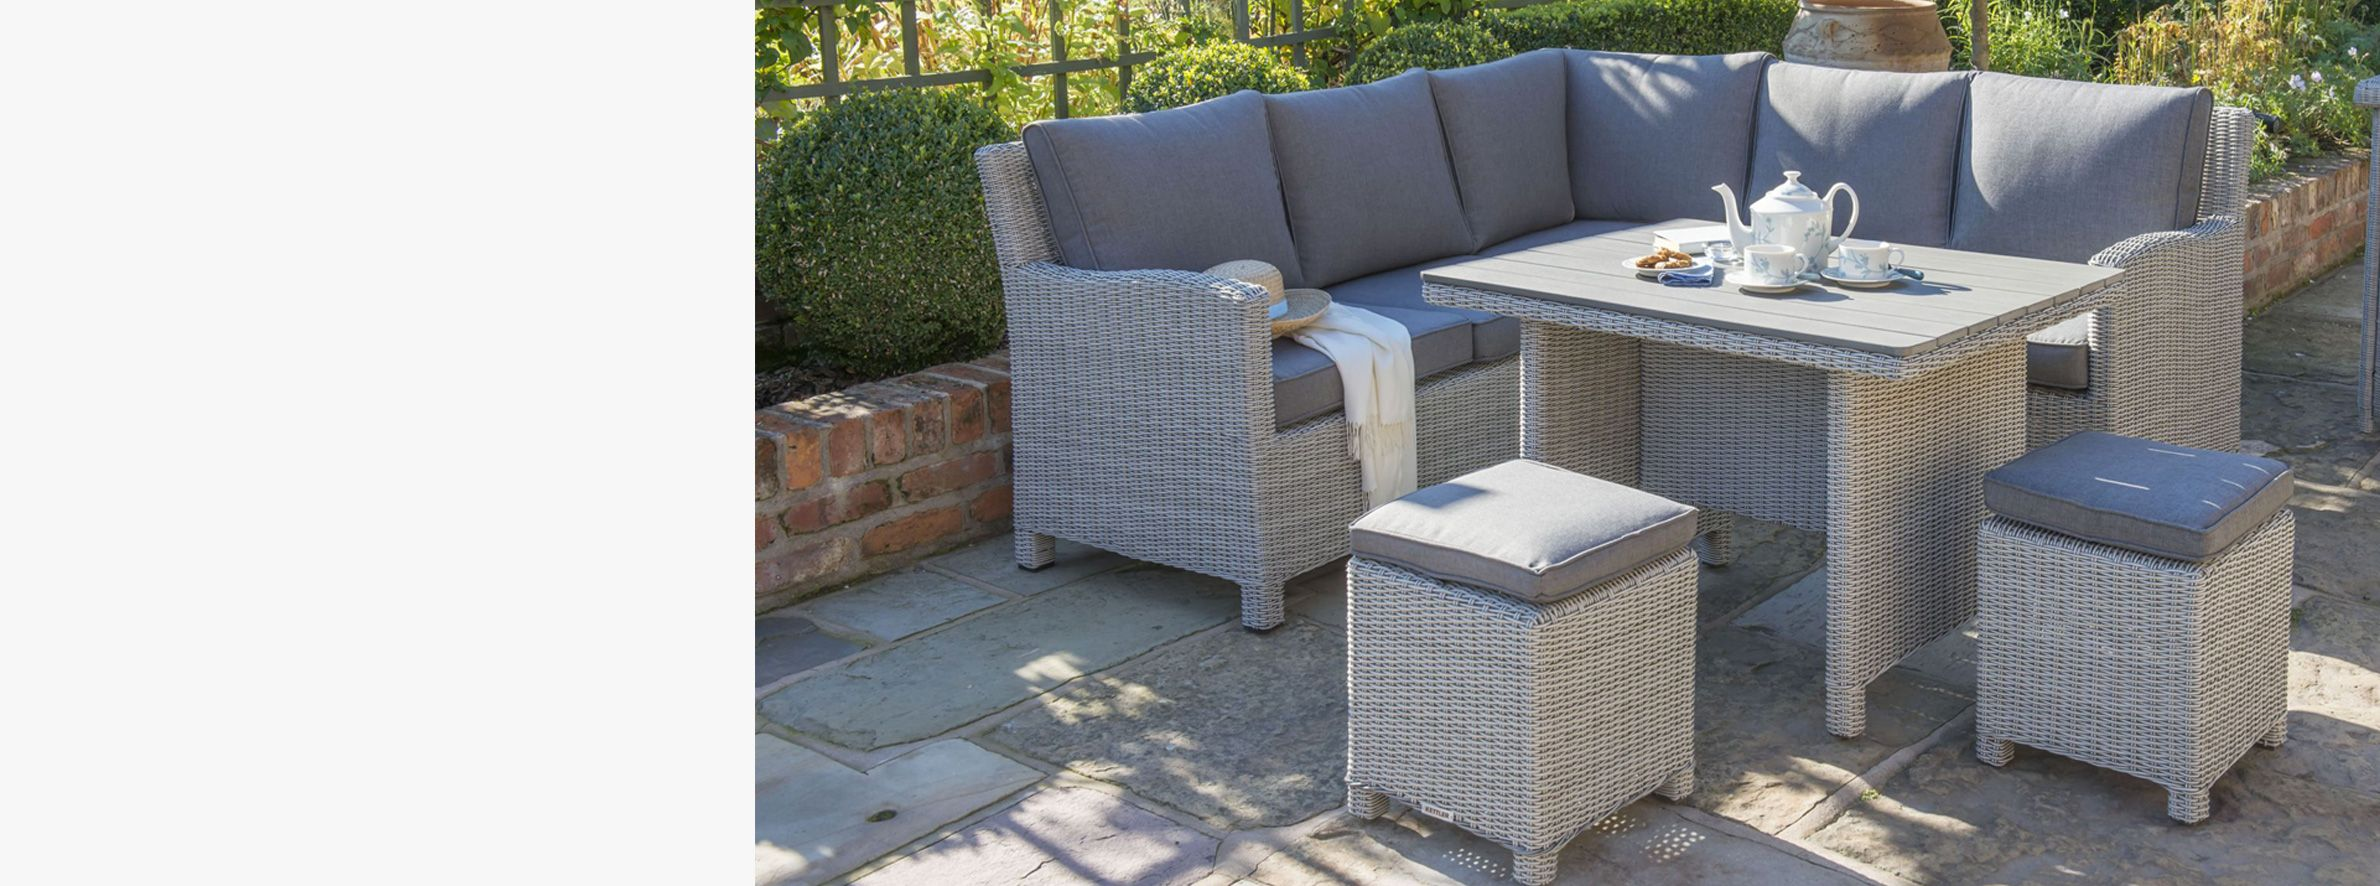 Discover a furniture that works for the whole family so you can enjoy al fresco meals this summer